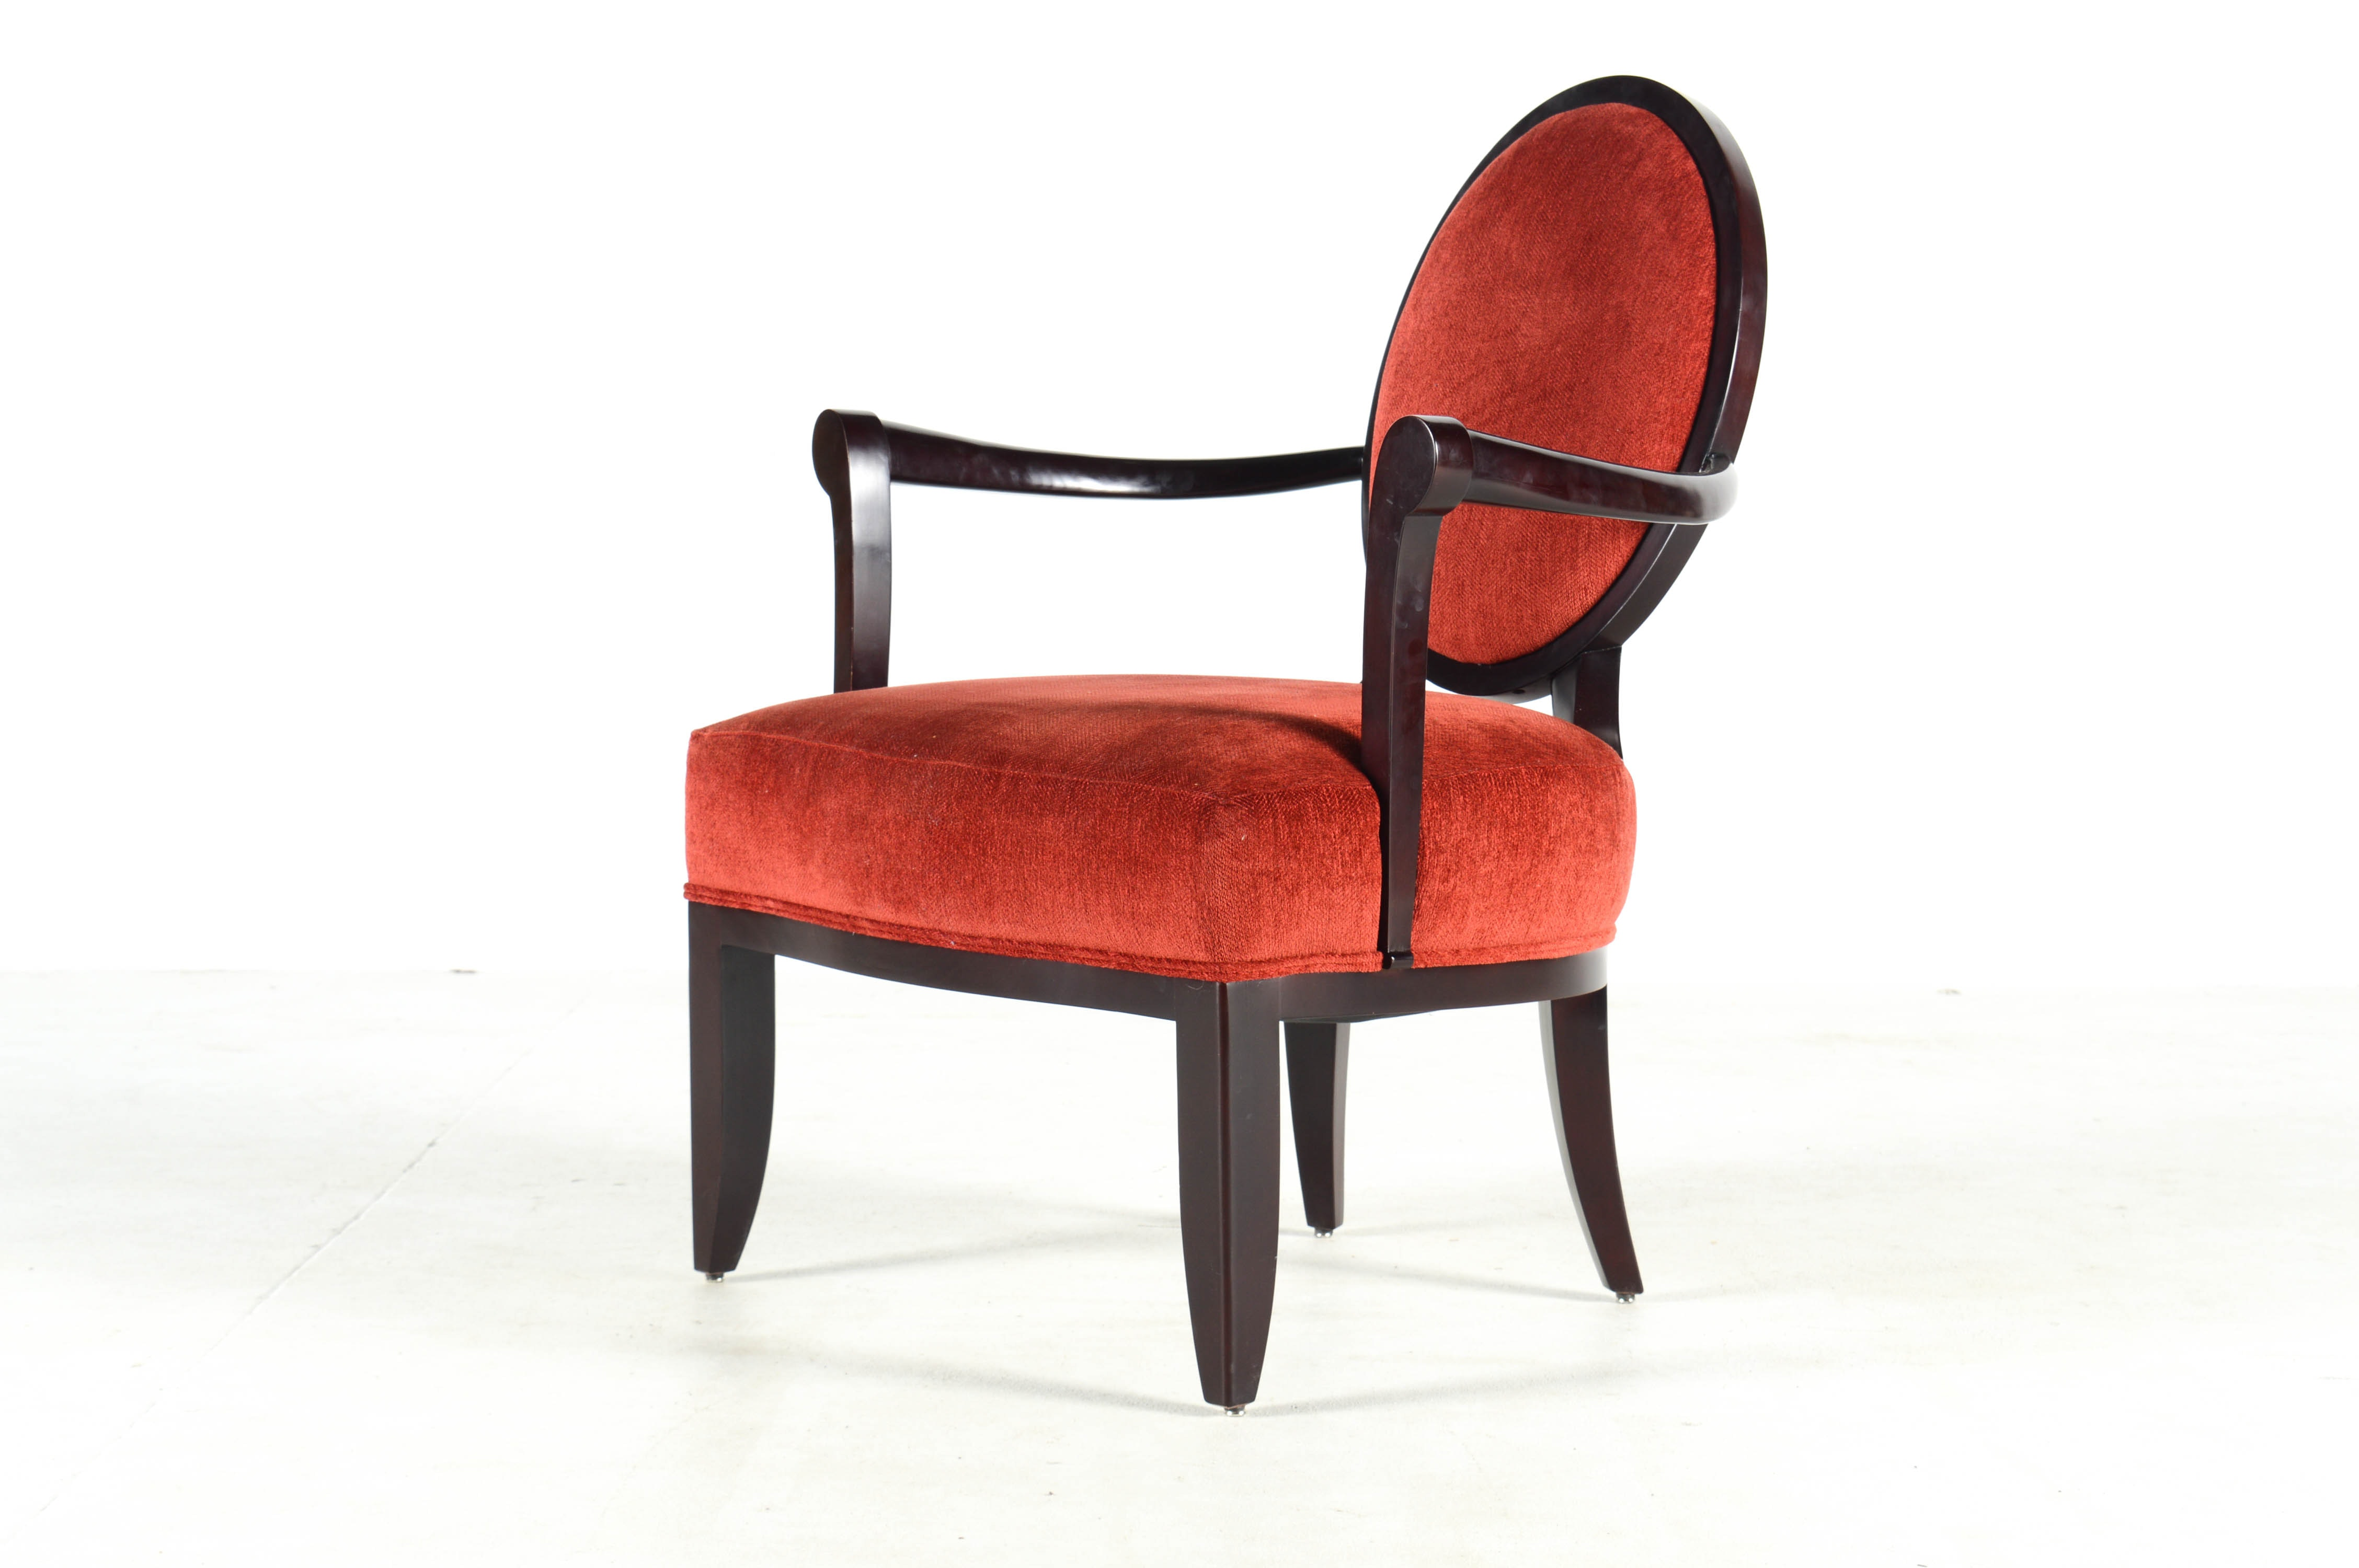 Baker Furniture Neoclassical Armchair From Barbara Barry